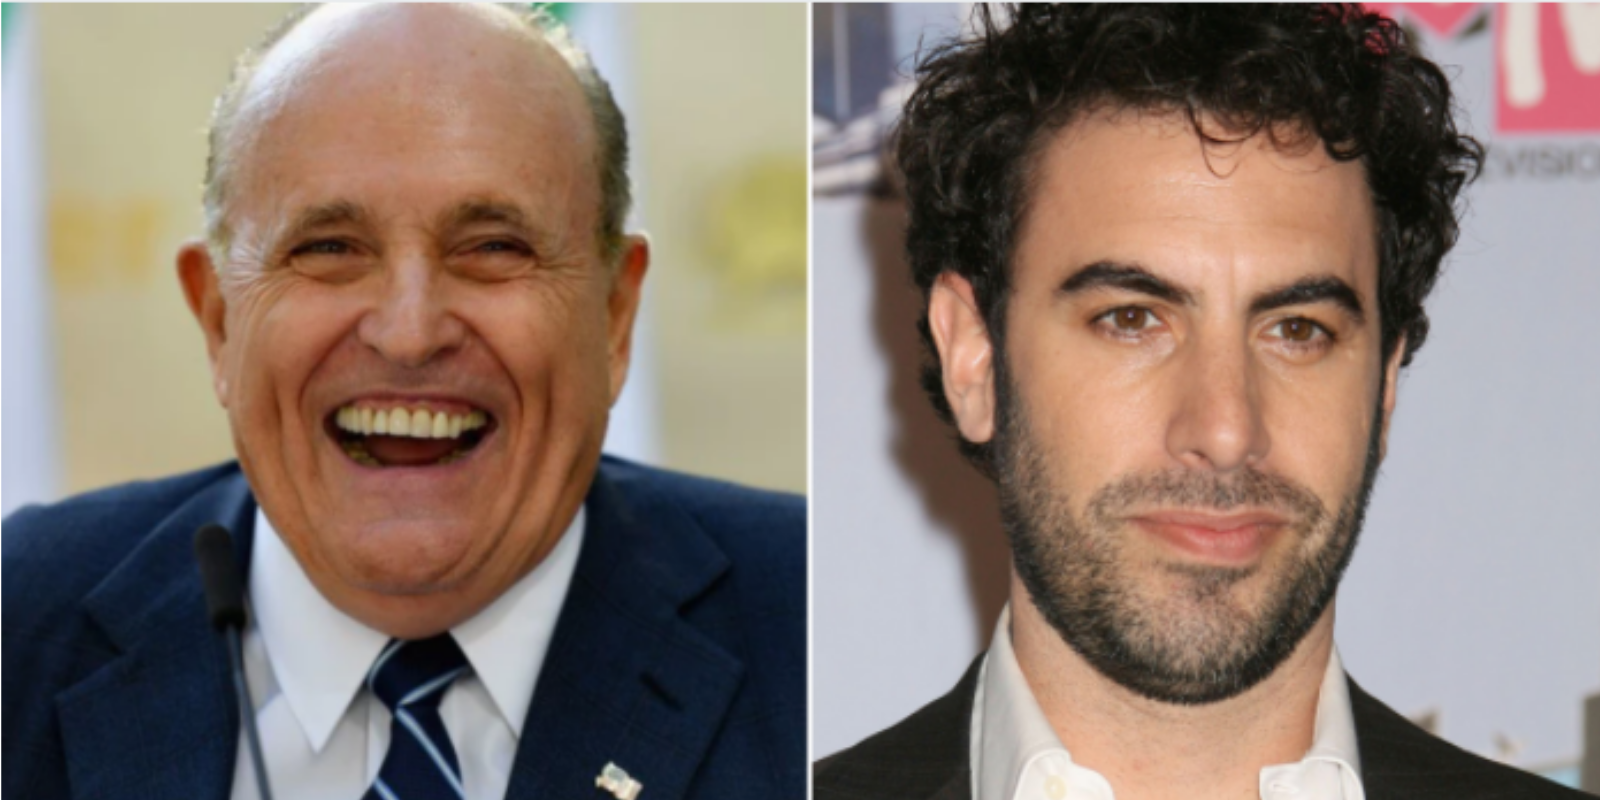 Liberal media and social media platforms promote vile 'underage sex' hoax targeting Trump lawyer Rudy Giuliani